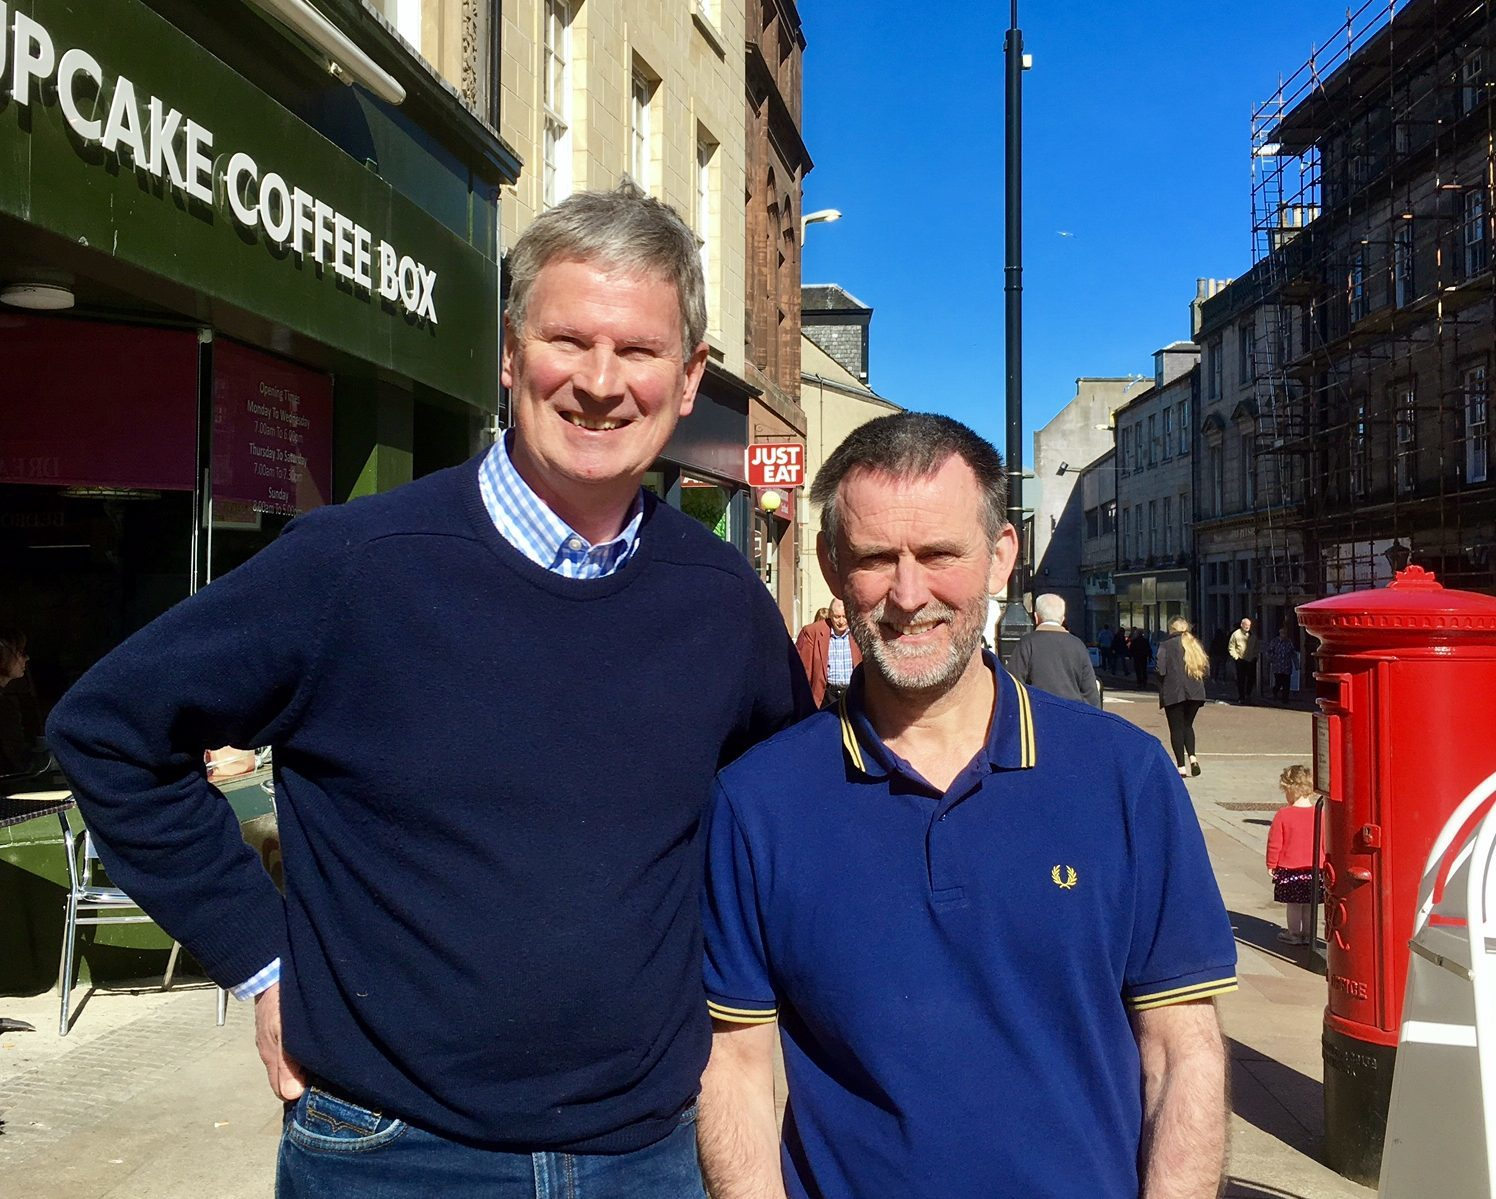 Tom Mitchell of Puddledub (left) with Mike Lowe on Kirkcaldy High Street